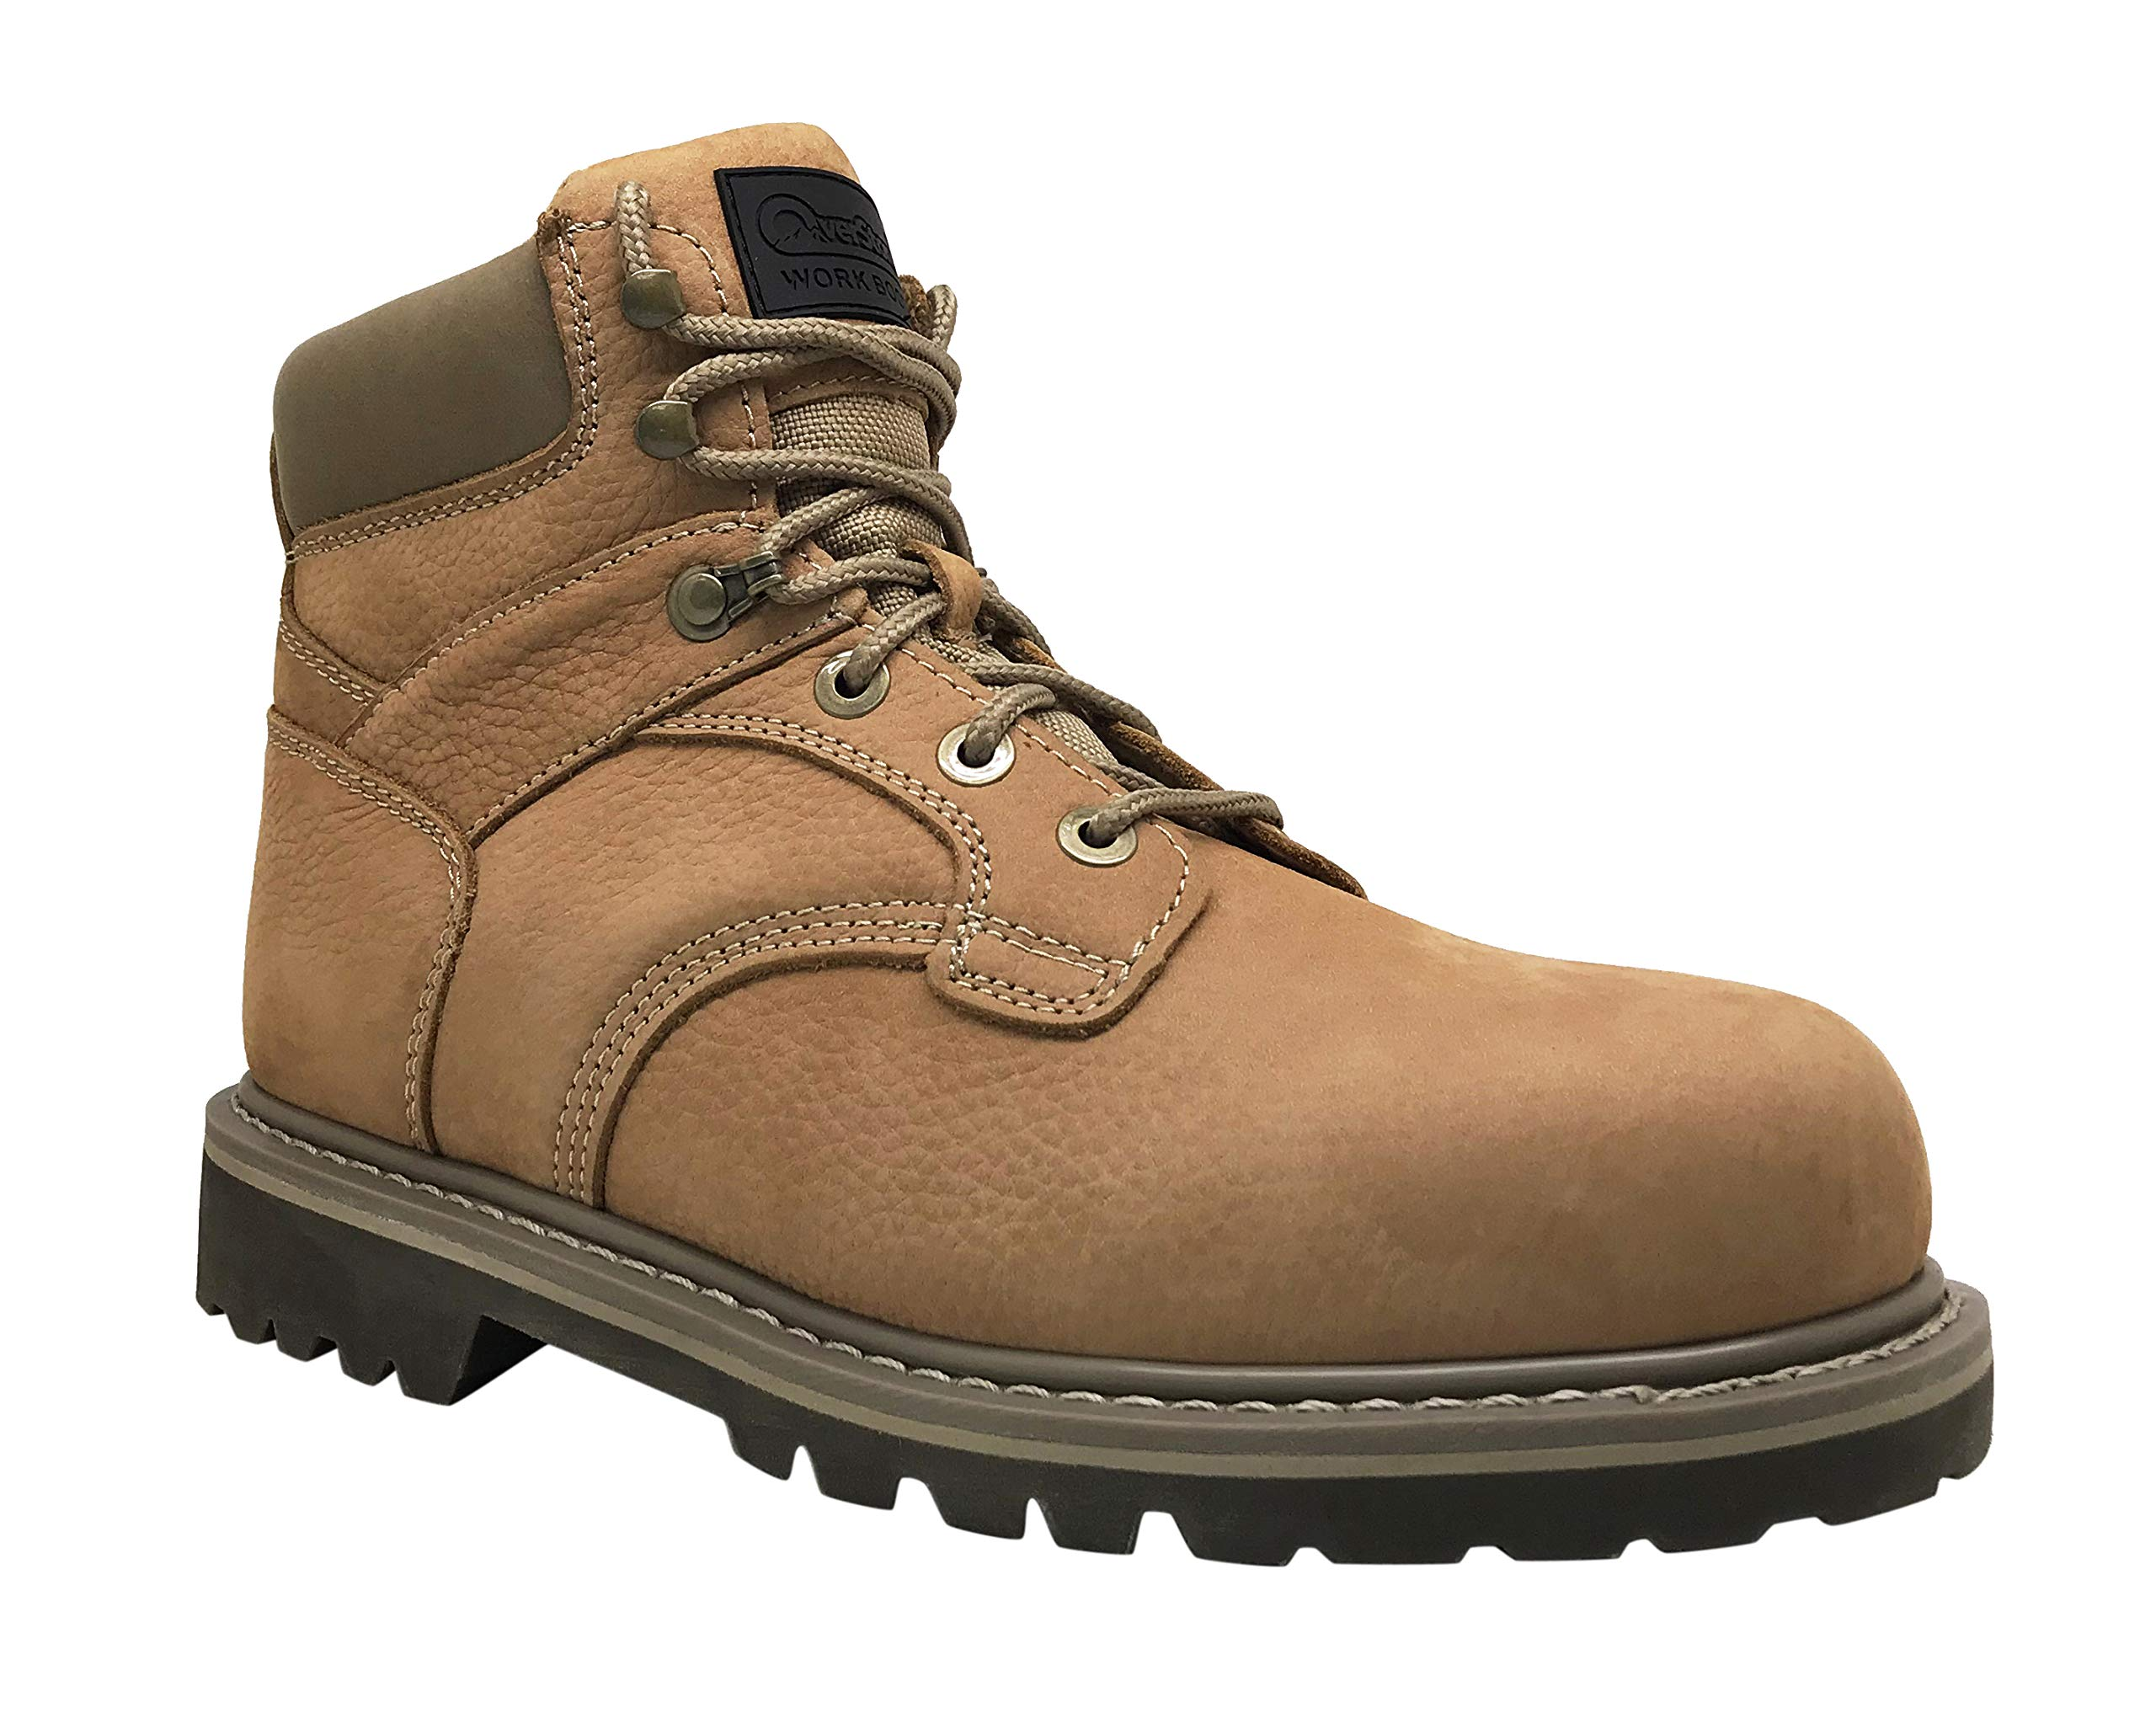 Overstone Men's 6'' Steel Toe Leather Work Boot, Electric Hazard Protection, Industrial and Construction Work Boots